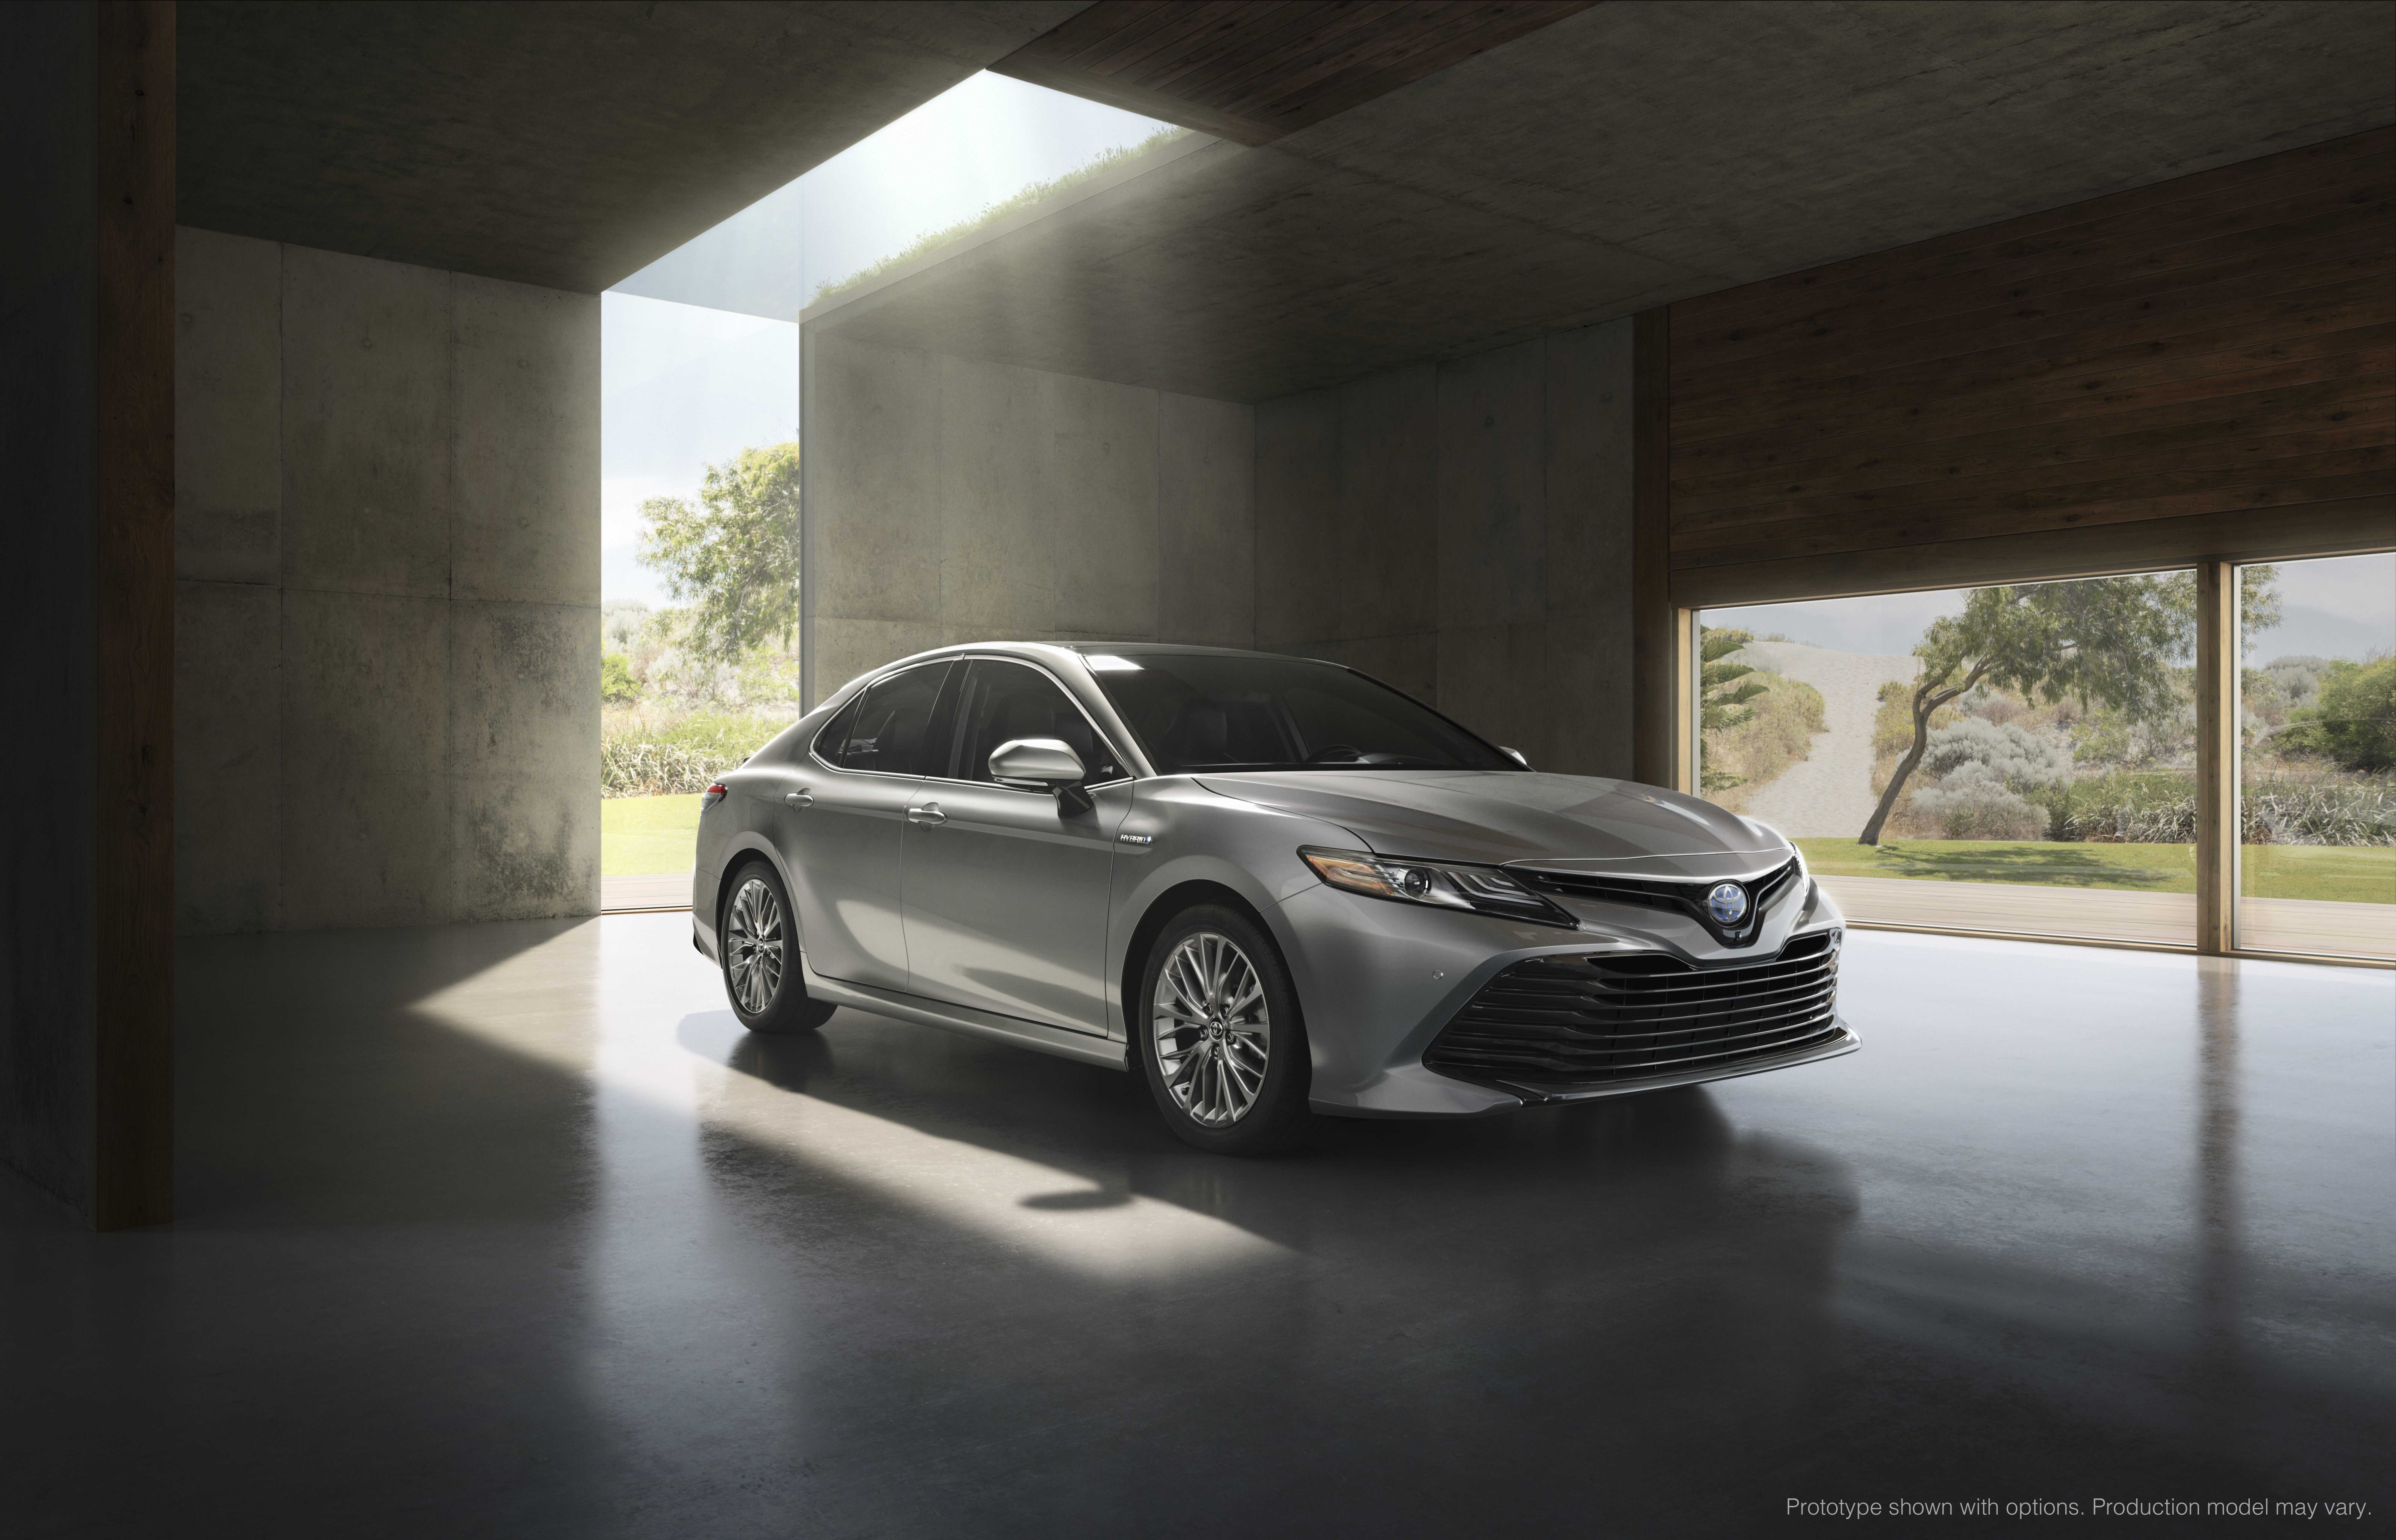 all new toyota camry yaris trd price philippines ante raised 2018 gains emotionally charged design and performance experience